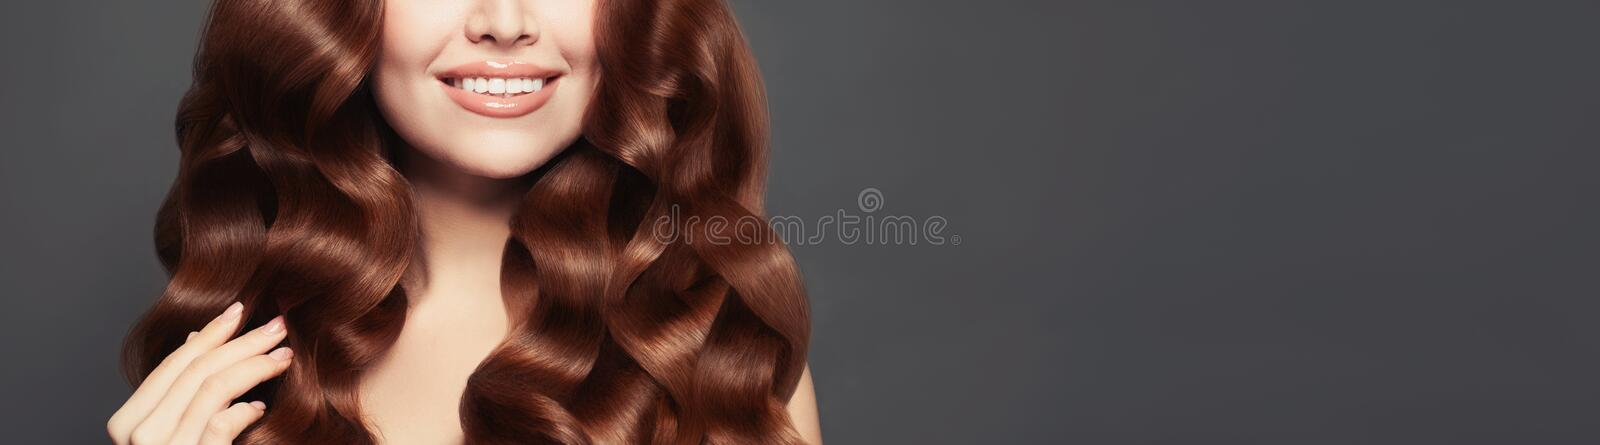 Beautiful female model hair. Long curly healthy hair and perfect smile royalty free stock photo